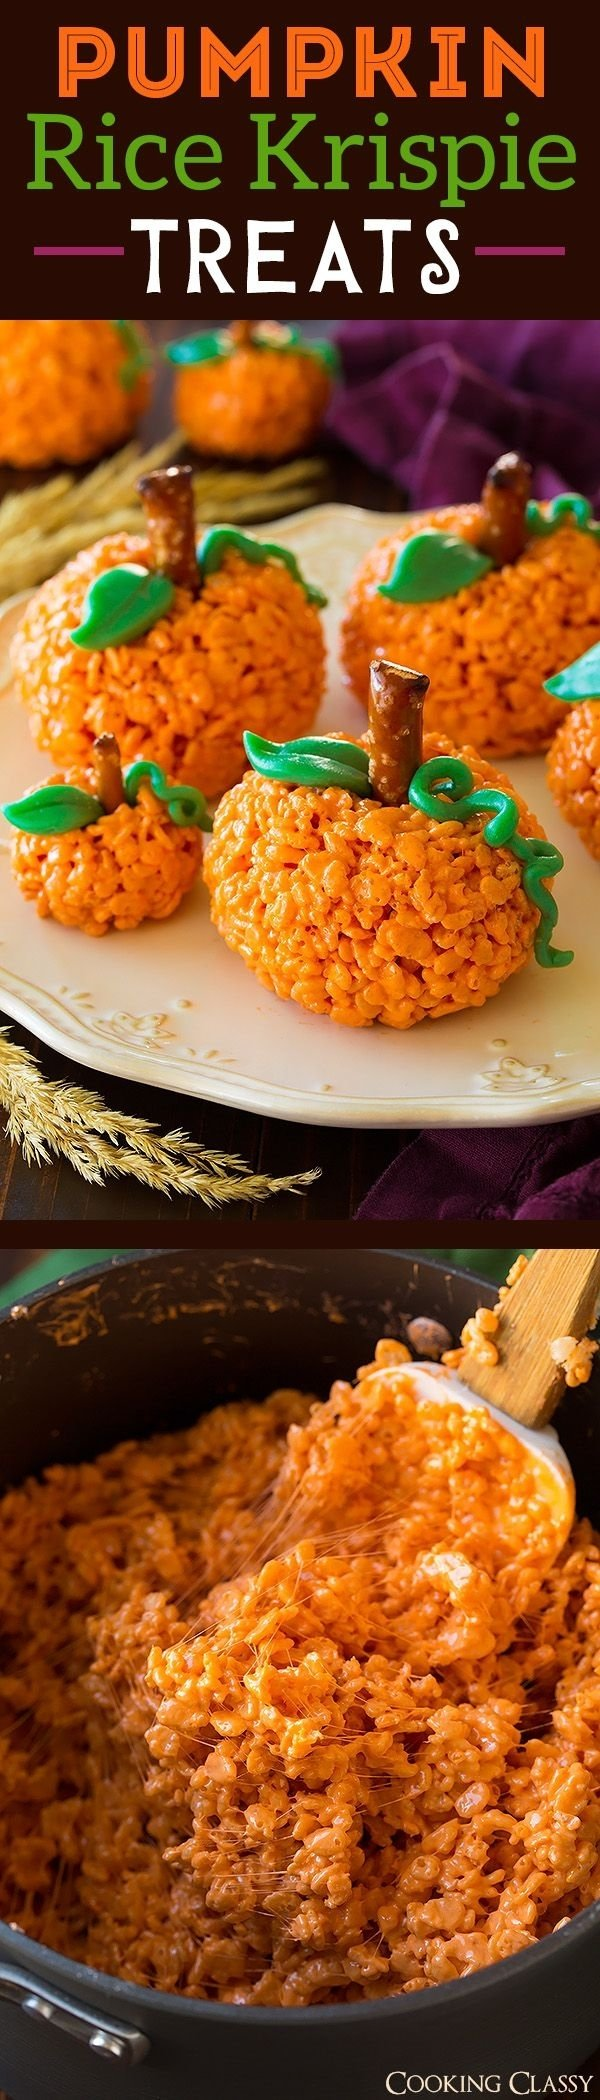 10 Awesome Halloween Baking Ideas For Kids 643 best cooking classy desserts images on pinterest 2021